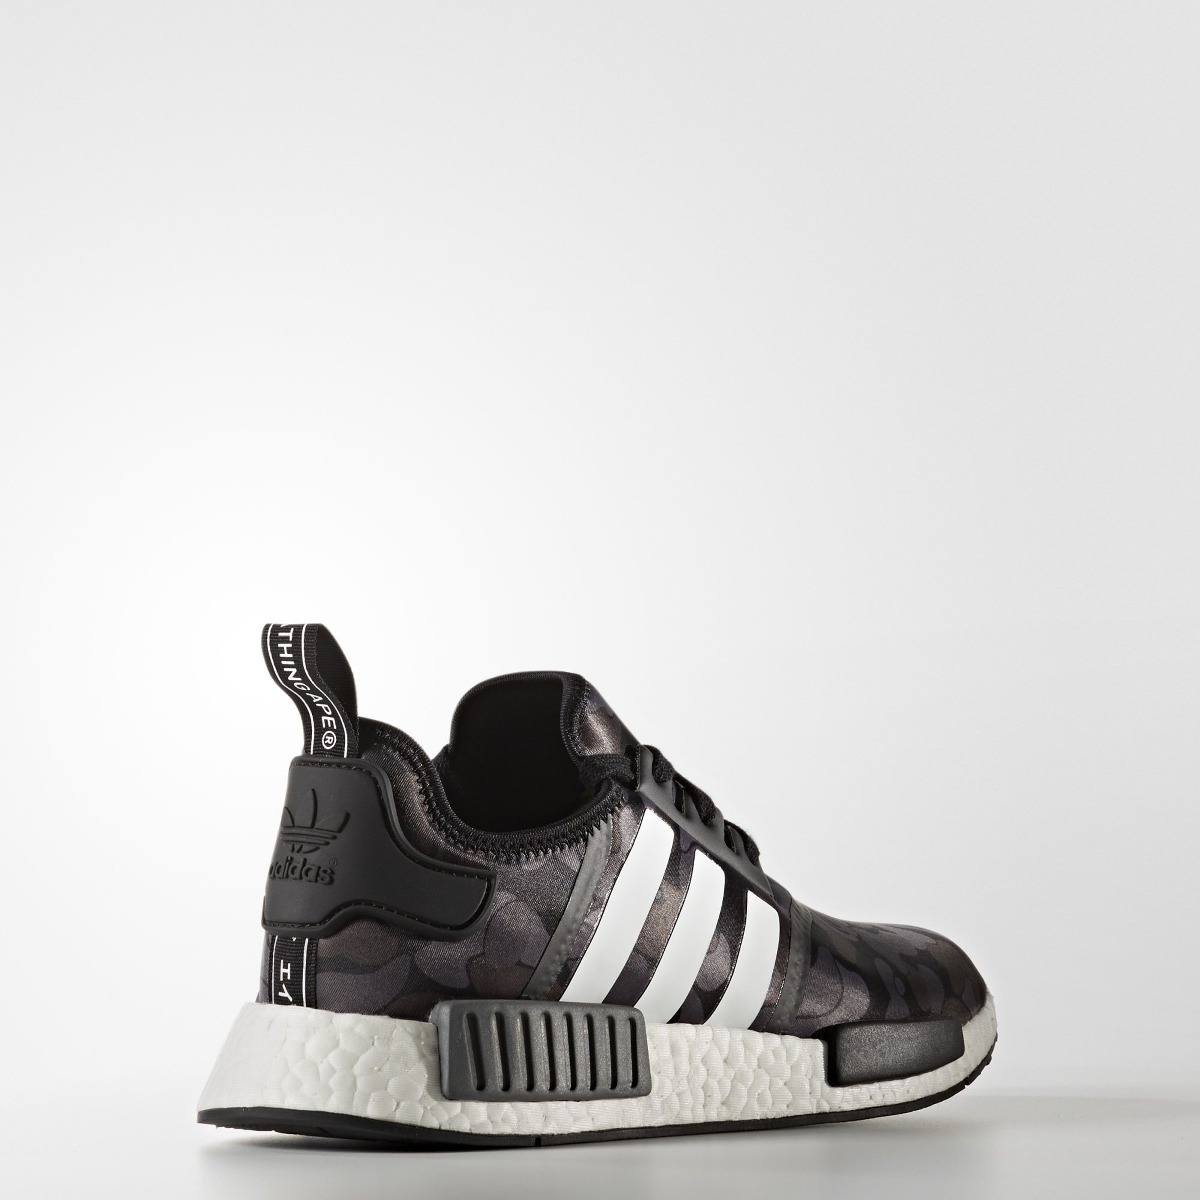 adidas NMD XR1 Archives